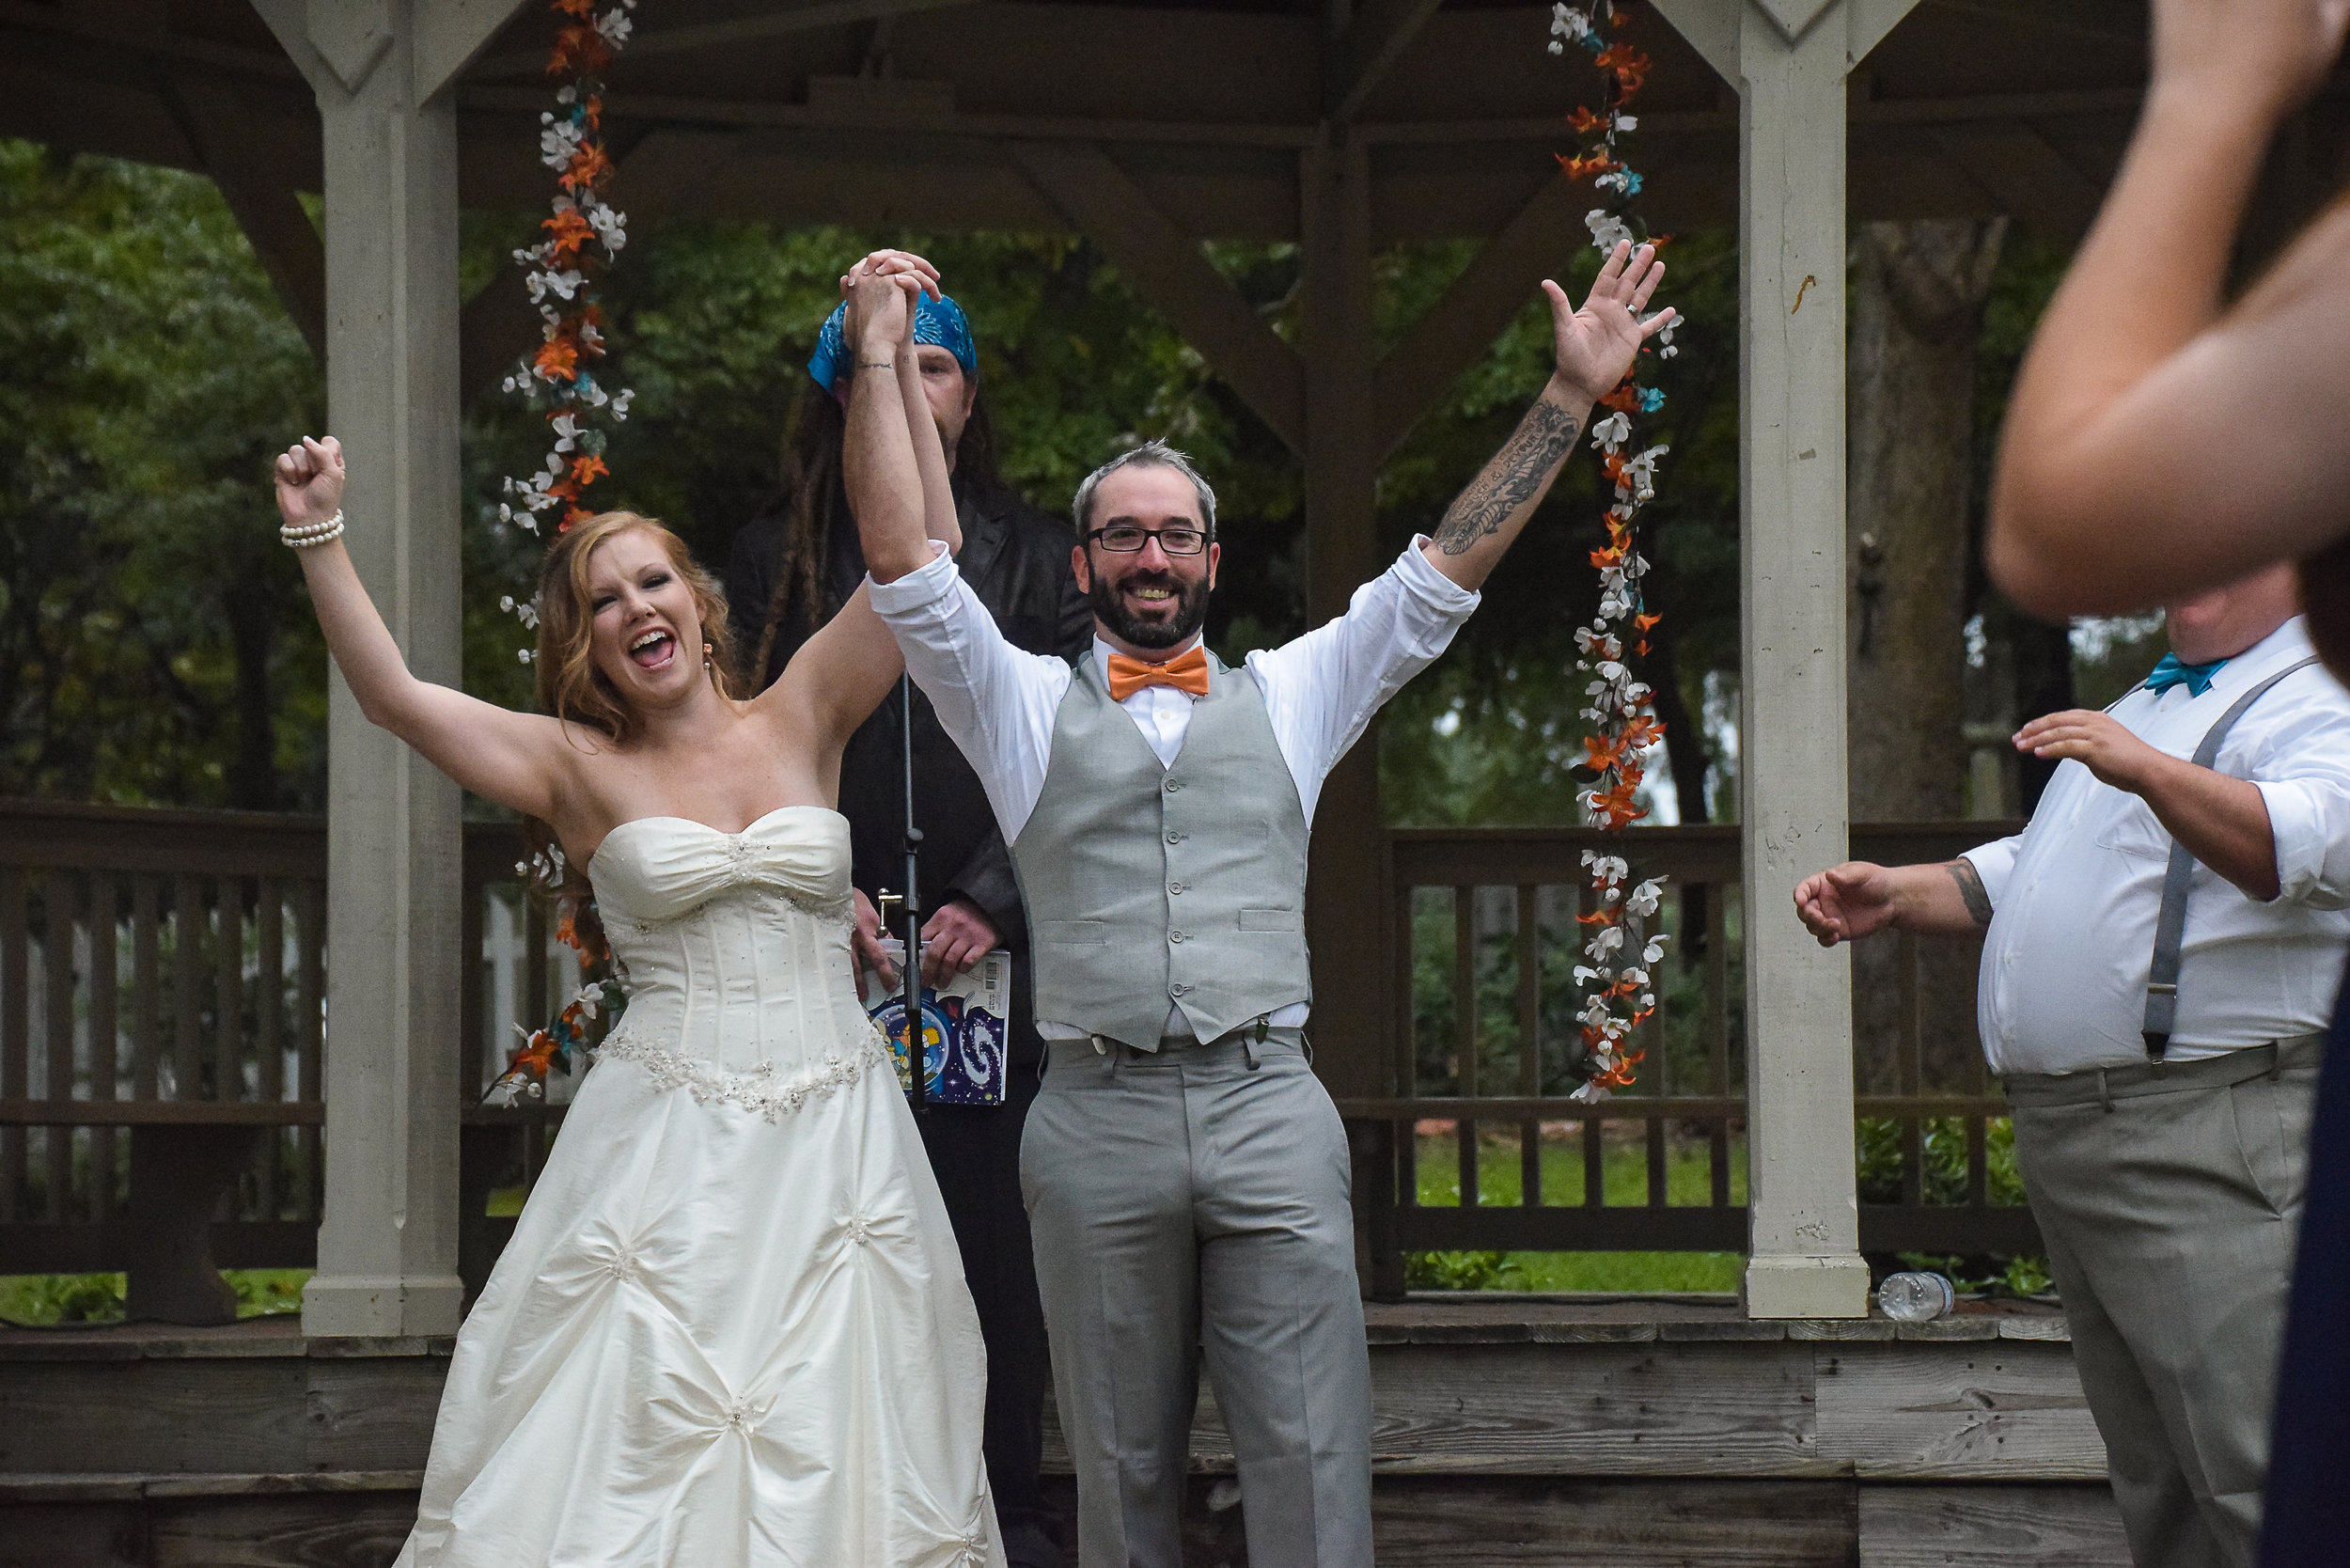 Bride and groom with arms raised.